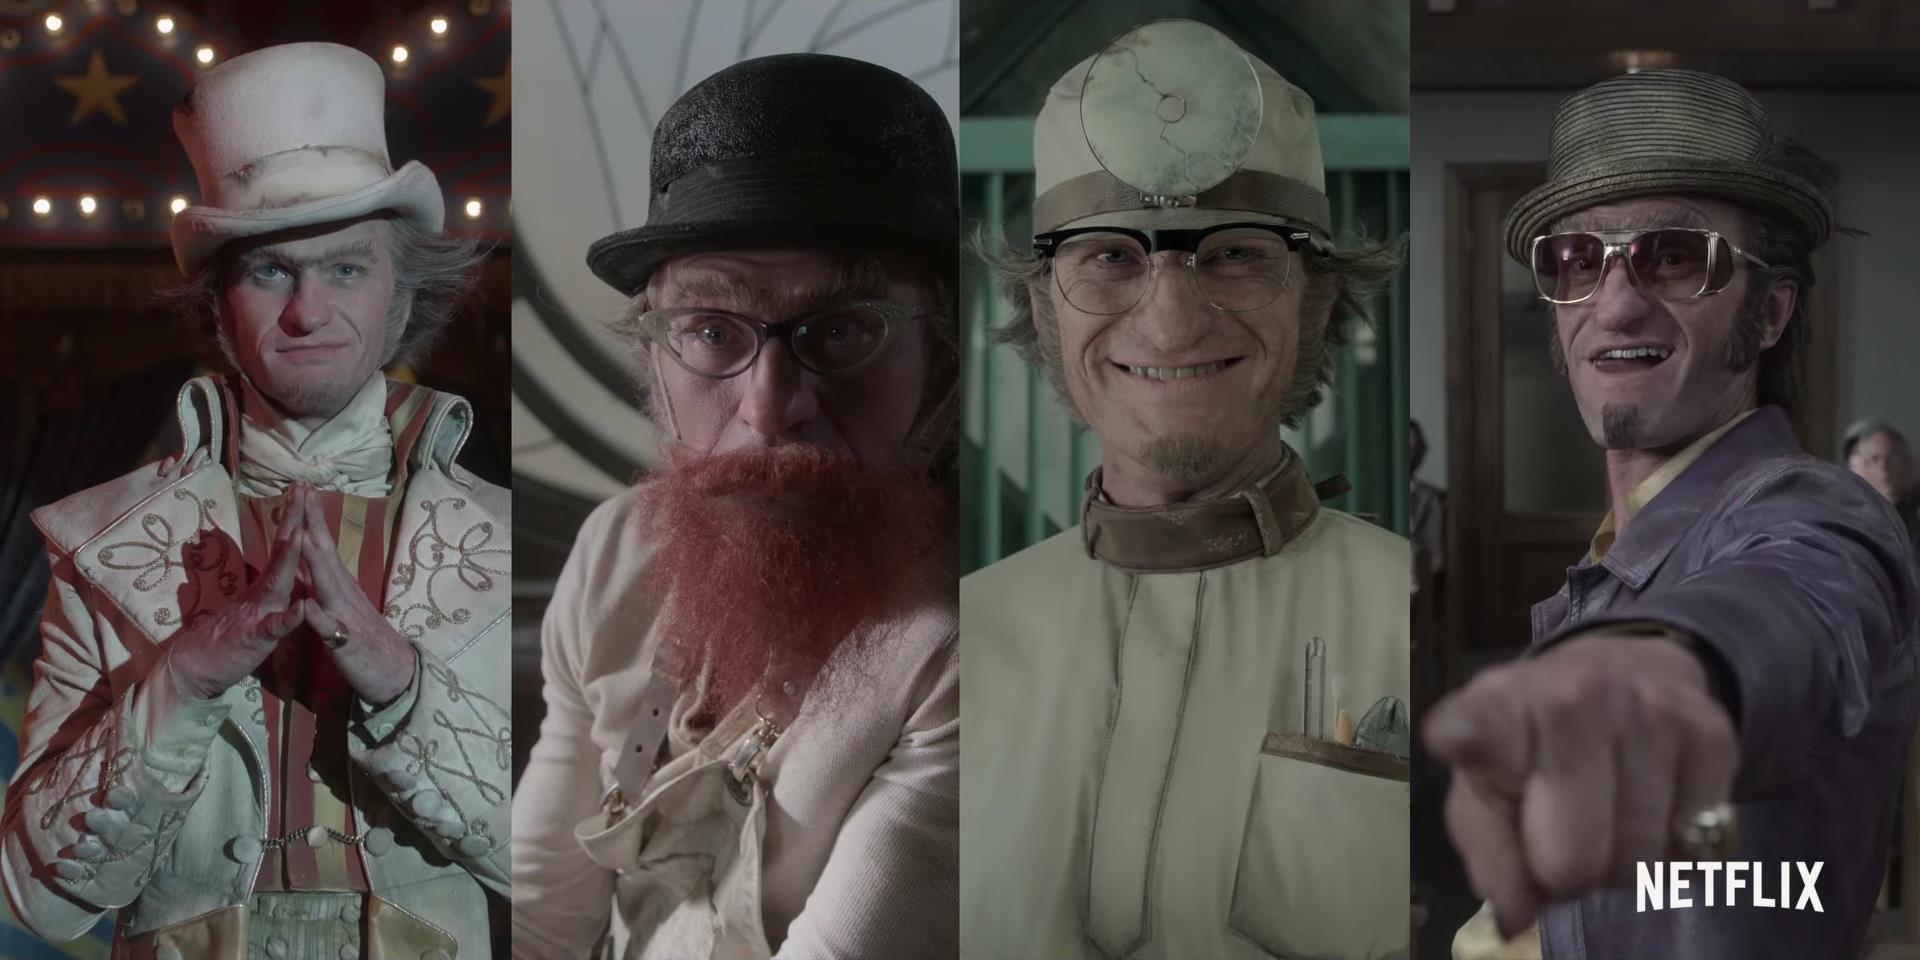 New Trailer Released For Netflix's A SERIES OF UNFORTUNATE EVENTS Season 2